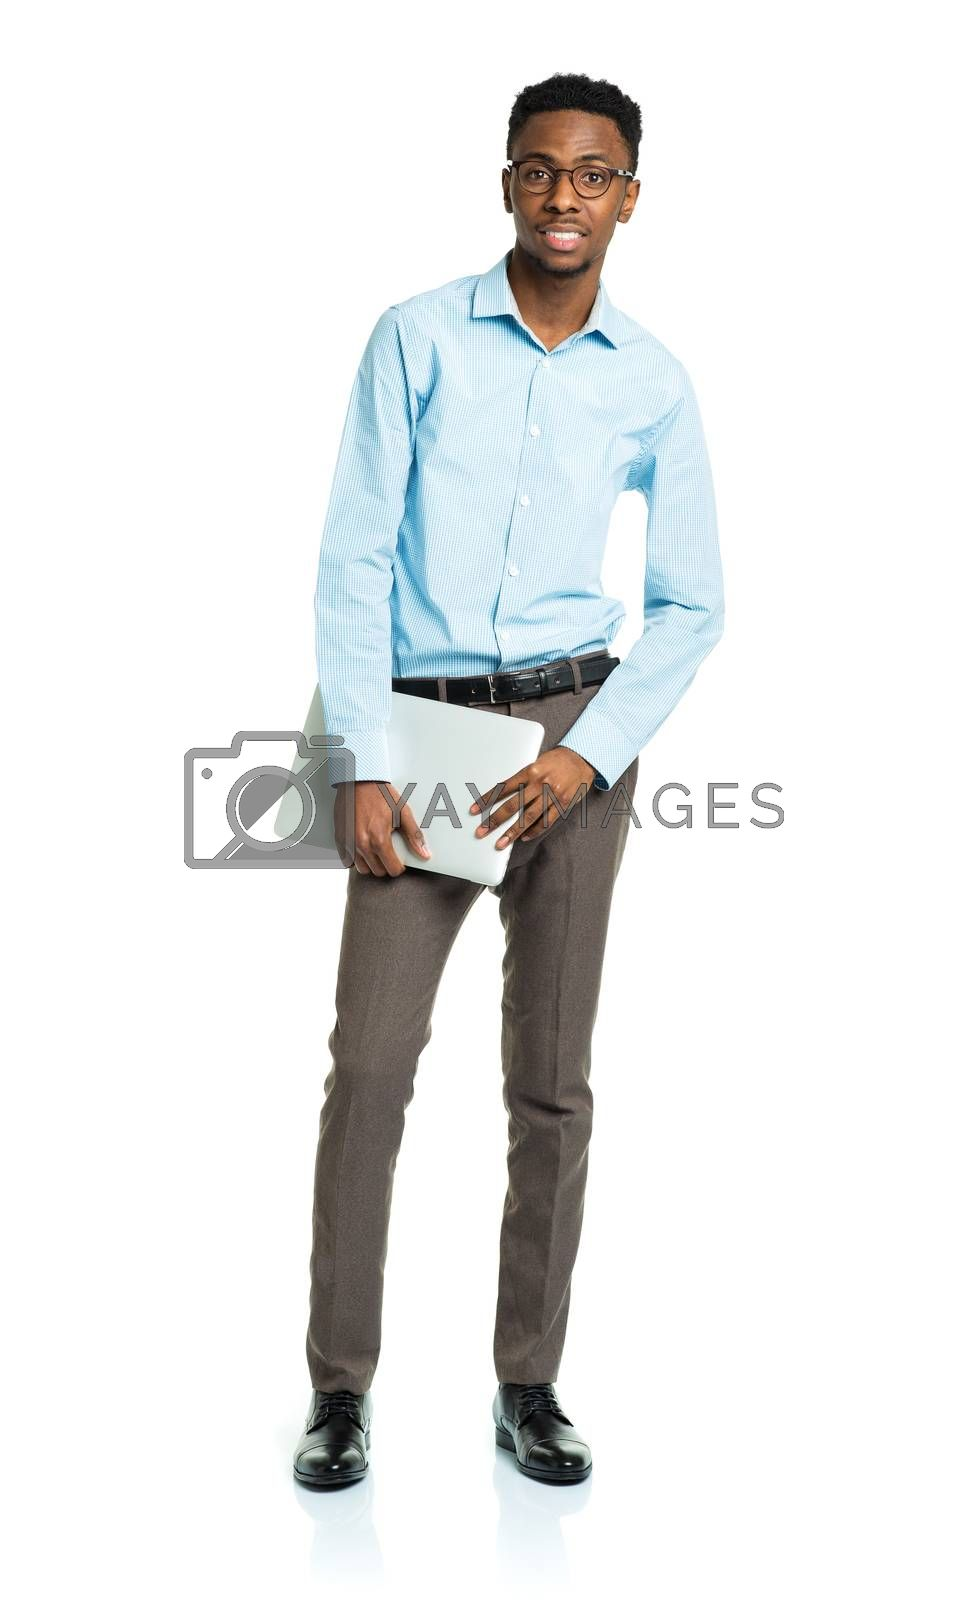 Royalty free image of Happy african american college student with laptop standing on w by vlad_star